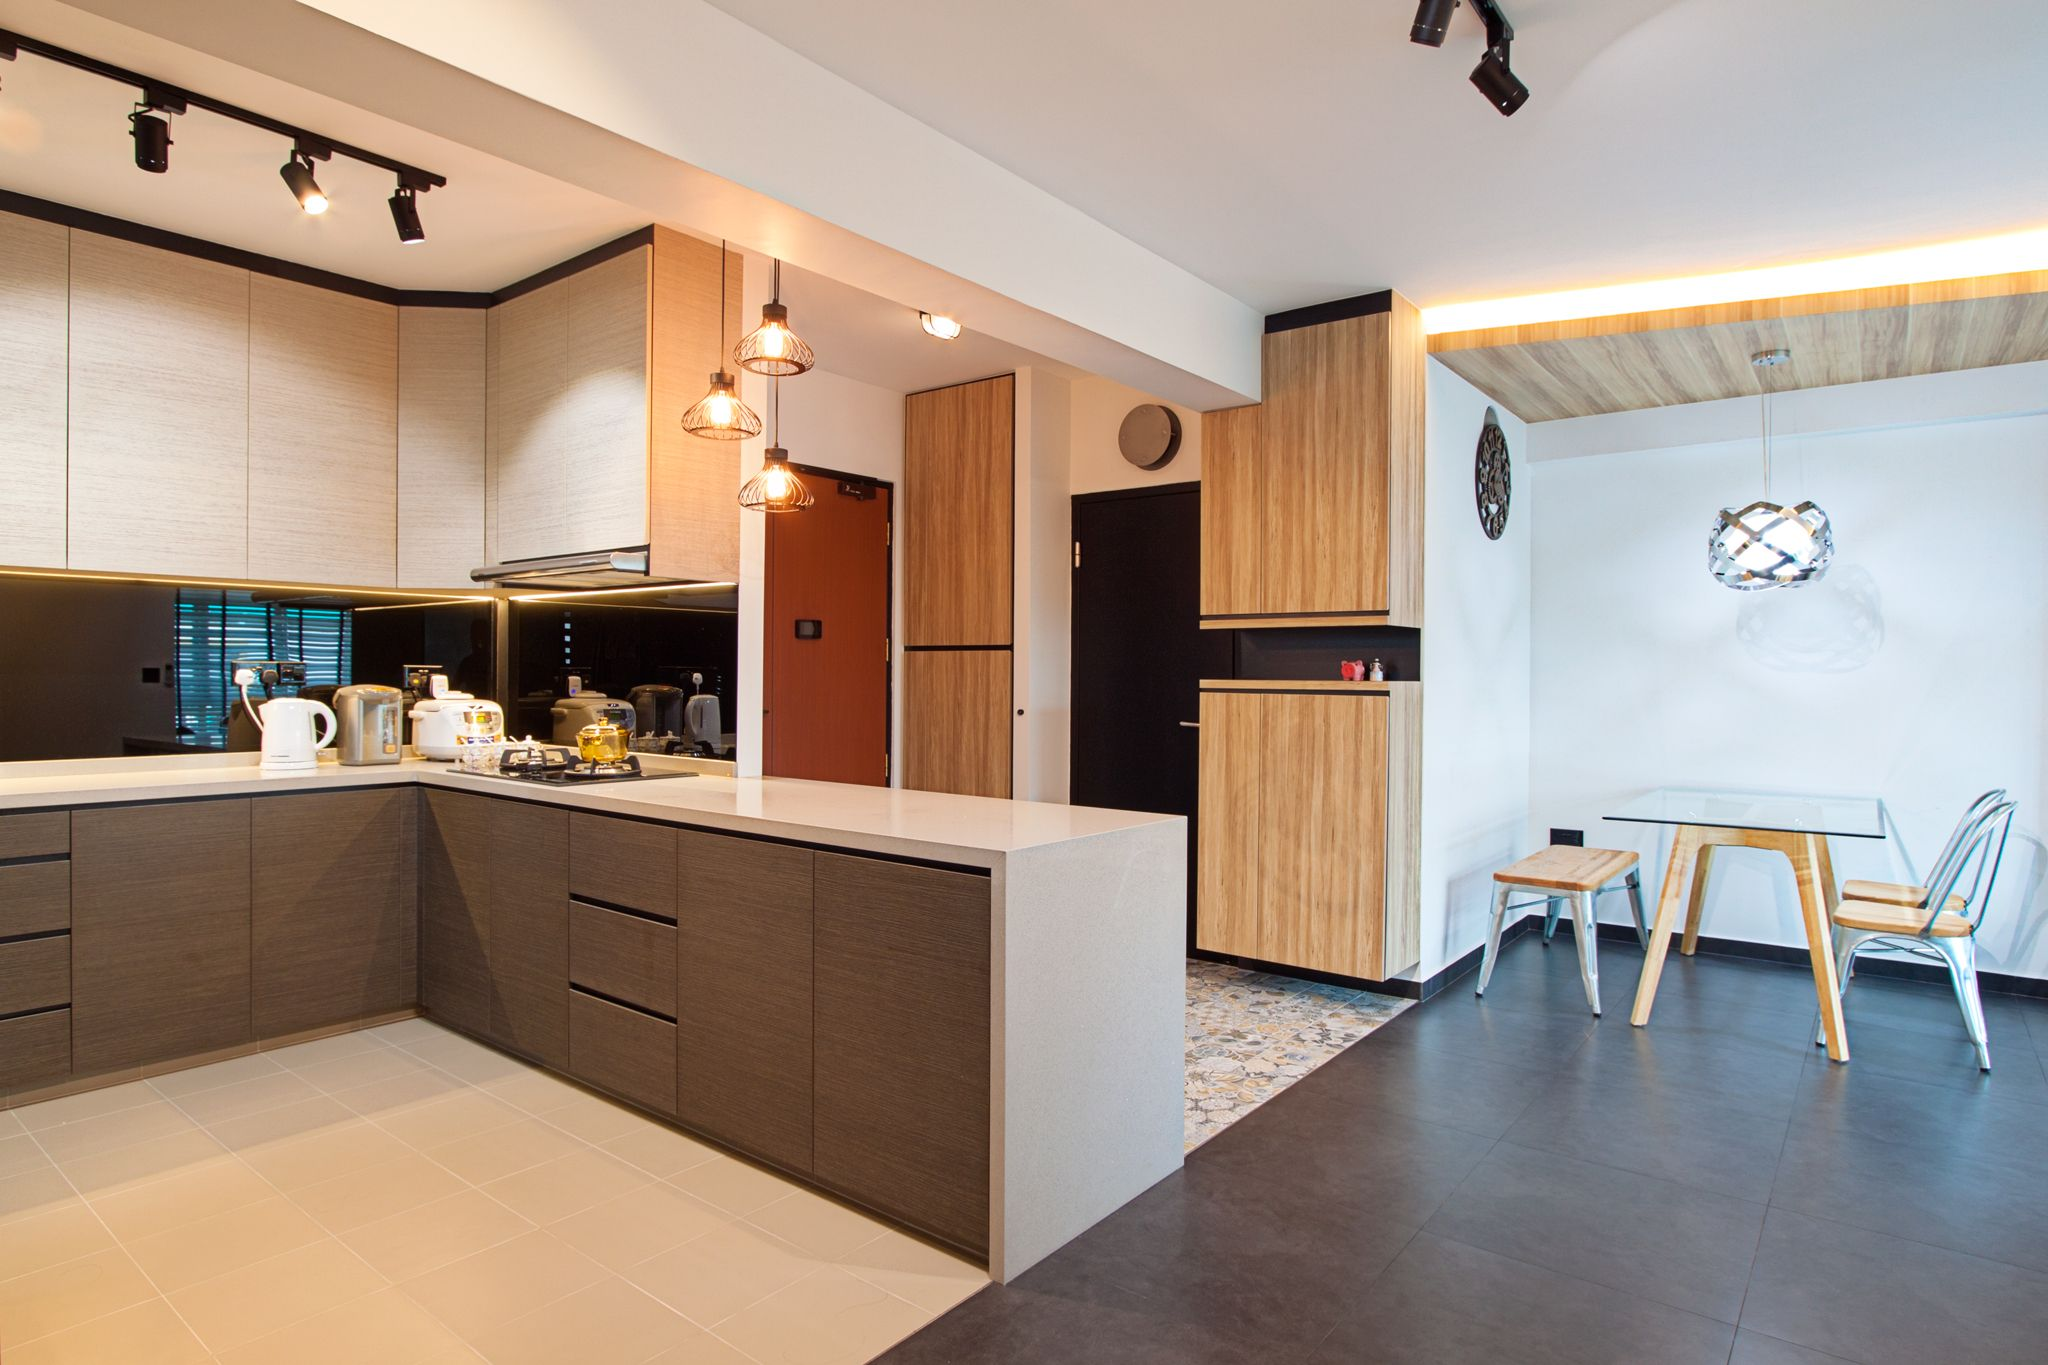 Hdb 4 Room Standard Flat 93 Sqm Highlight Of The House Is The Open Kitchen Open Concept Kitchen Living Room Dream House Ideas Kitchens Kitchen Remodel Design